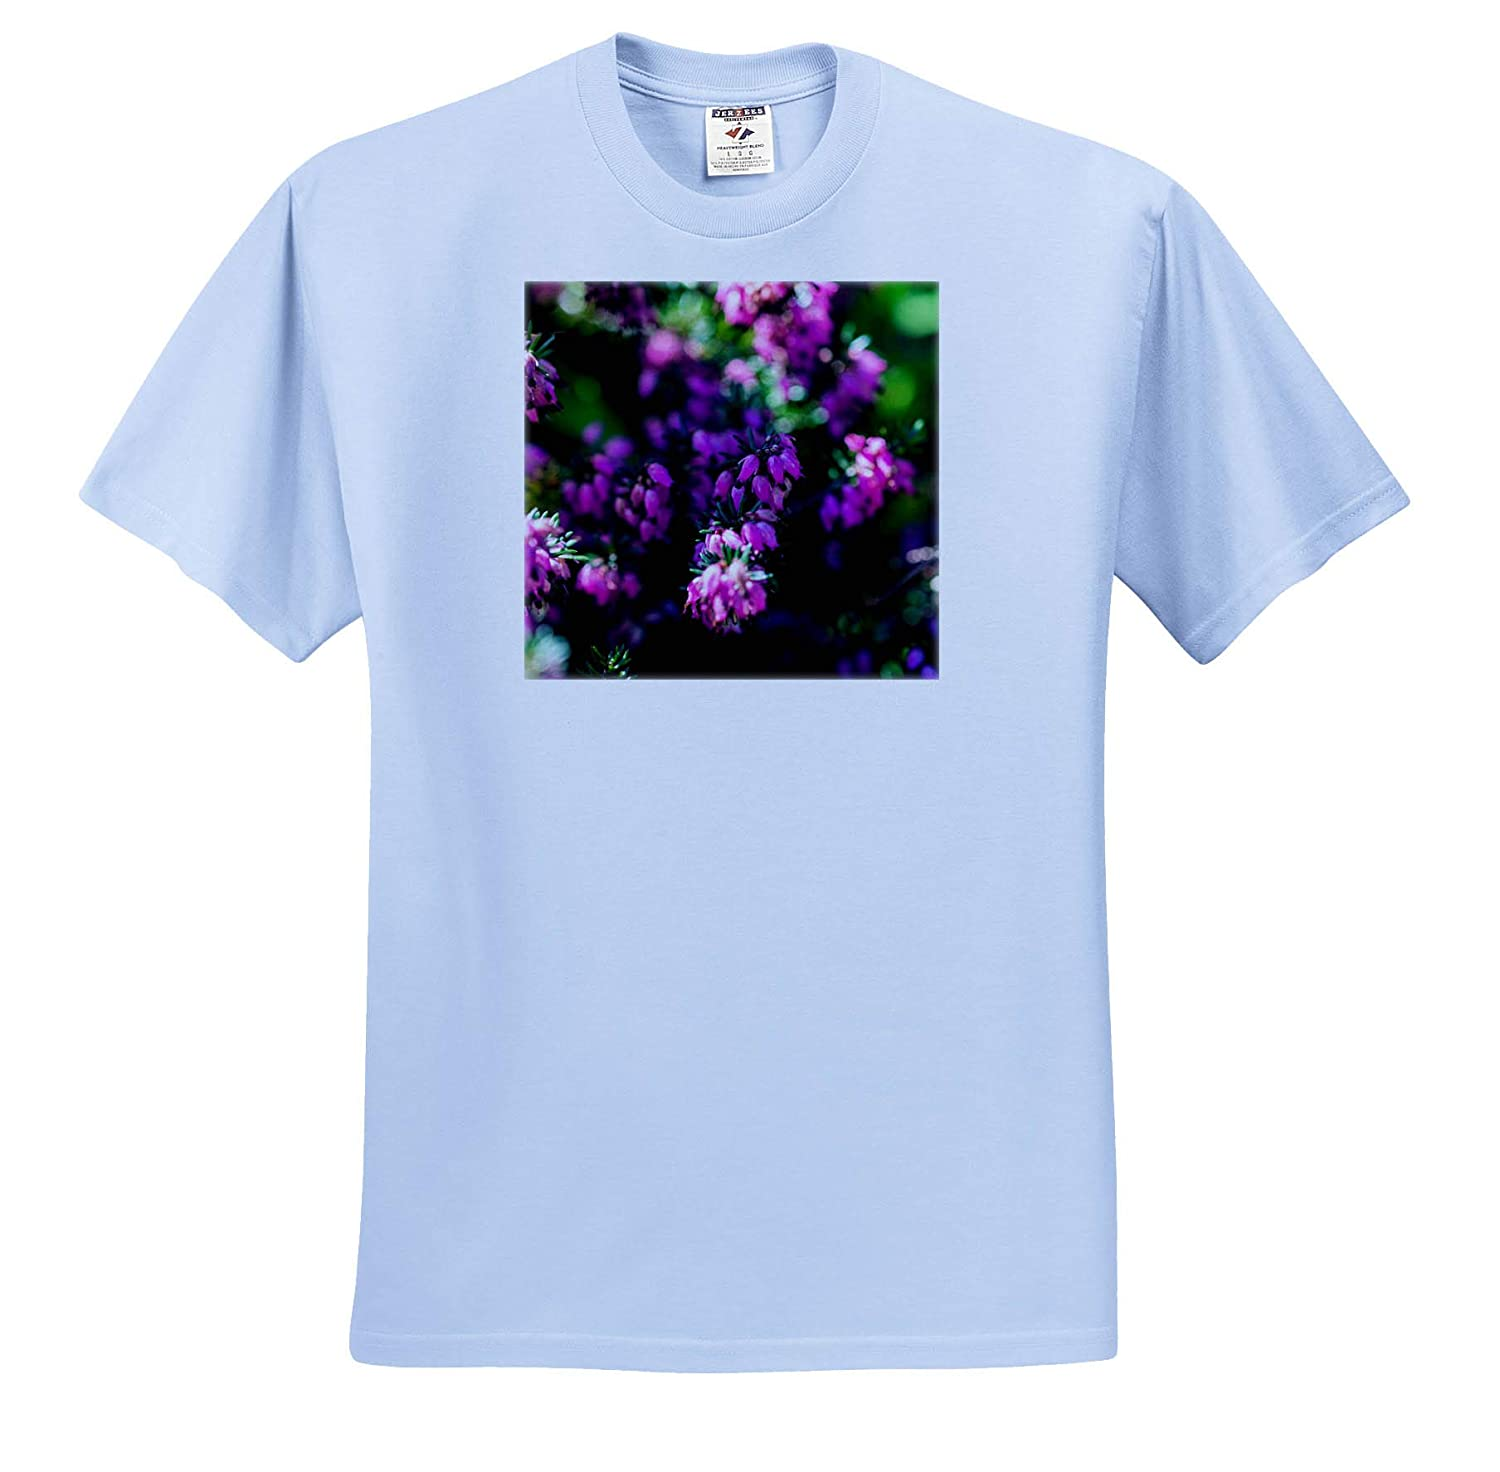 Purple Flowers on a Flowerbed 3dRose Alexis Photography ts/_311029 Adult T-Shirt XL Beauty of Spring Flowers